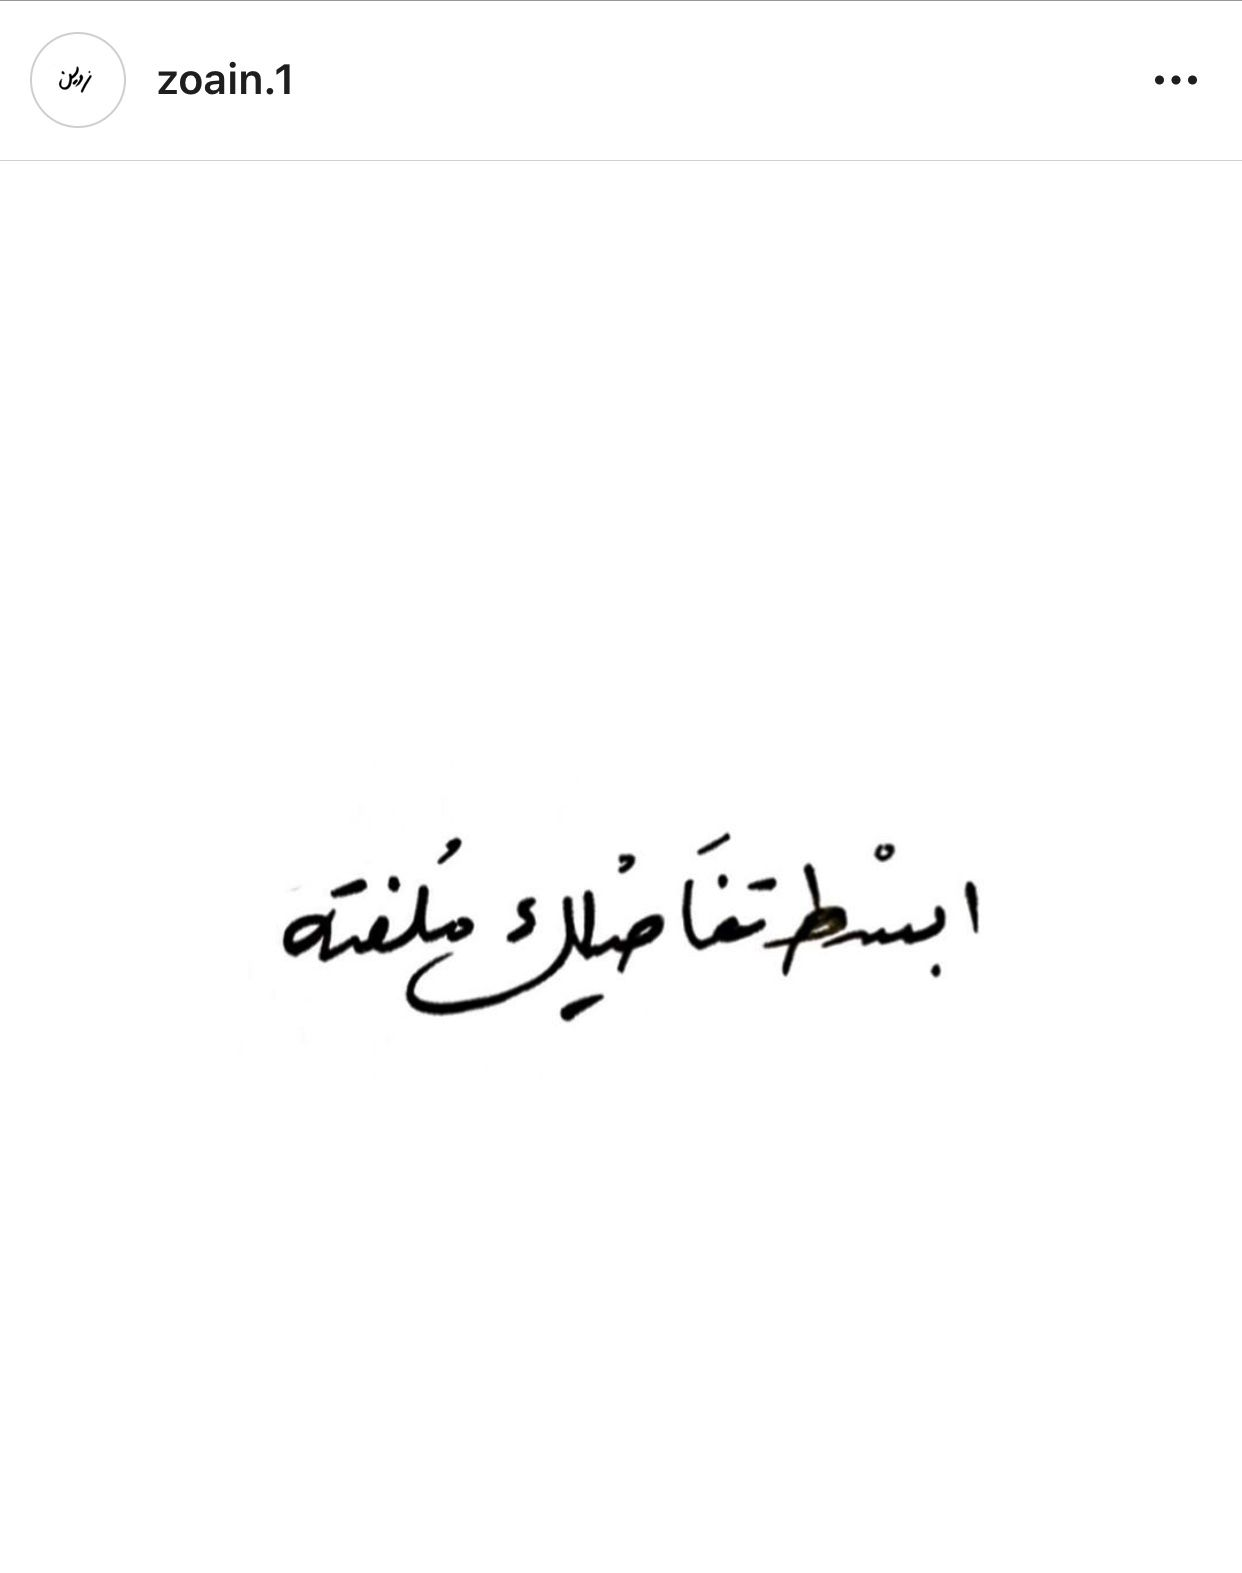 Pin By Maitha Alkhouri On عبارات In 2020 Arabic Love Quotes Sweet Love Quotes Snap Quotes